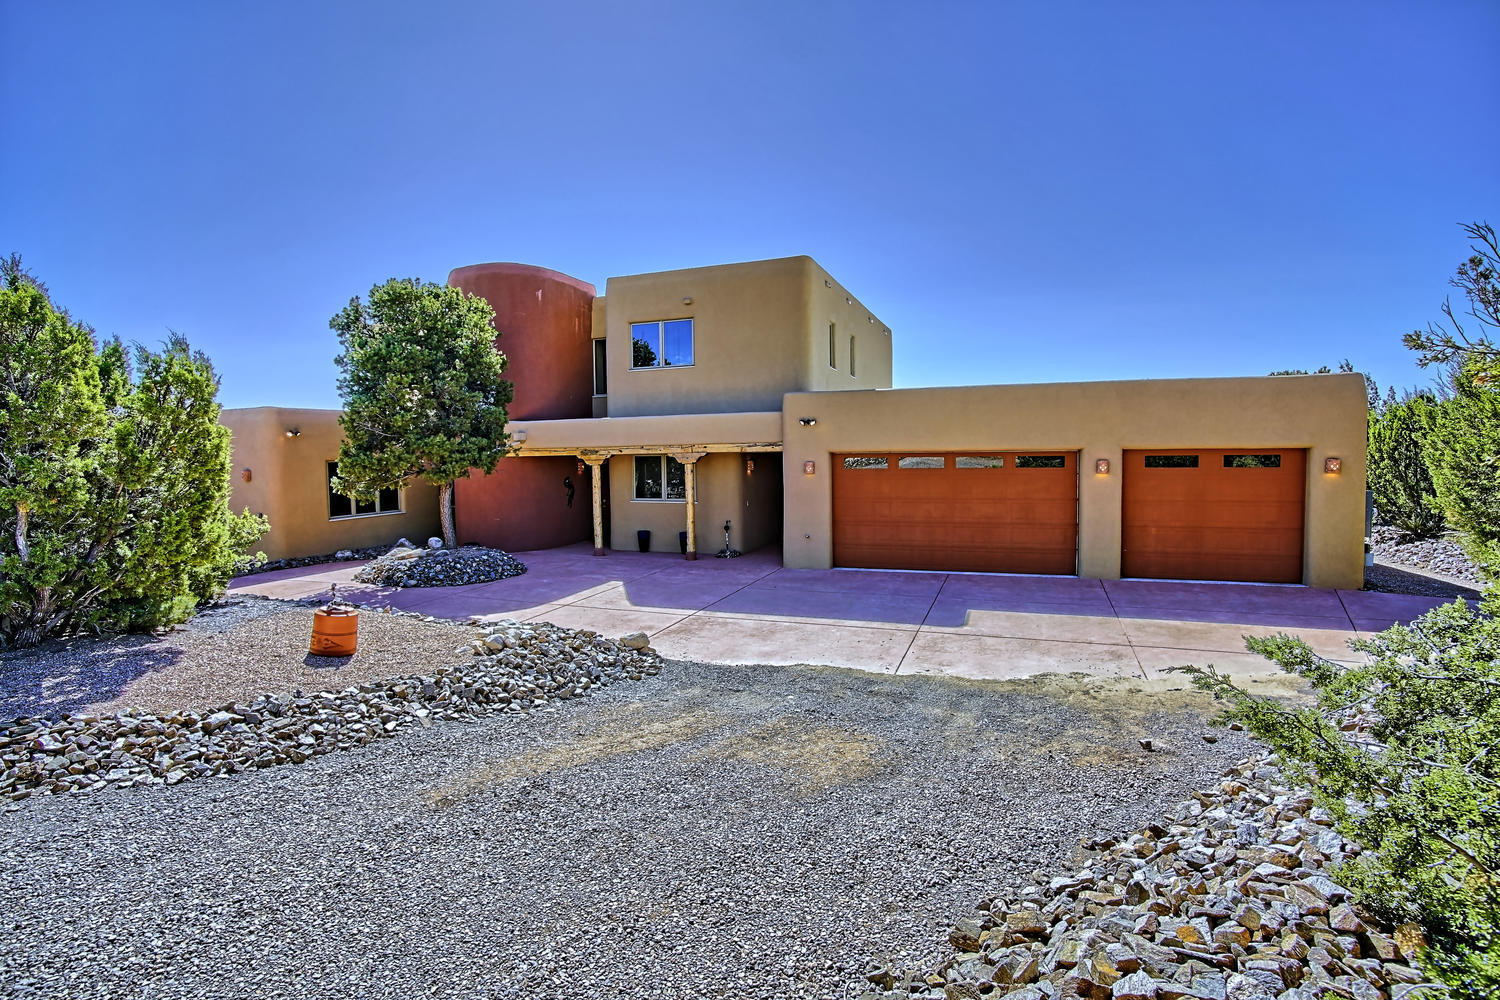 TRANQUIL PUEBLO! A Secluded and Private custom home built with Apex walls, it is fire-, insect and allergy-proof, utility-friendly and amazingly comfortable- see documents!  Enjoy this beautiful private wooded property  at the end of the road with views of South Mountain up close. Enjoy entertaining friends with 2 backyard expanded patio areas  - covered portions 23X16 & 30X9.5, a huge loft deck. with amazing views & the sound of water coming from a lg pond. Many wonderful features, incl, spacious rooms, abundant storage, 3-car garage and 17X15 workshop, well-equipped kitchen,  diamond plaster walls, on demand hot water heater, jet tub, Pella wood & metal clad windows, almost all fenced and gated with great privacy.  This very special home is ready and waiting just for you...YOU'RE HOME!